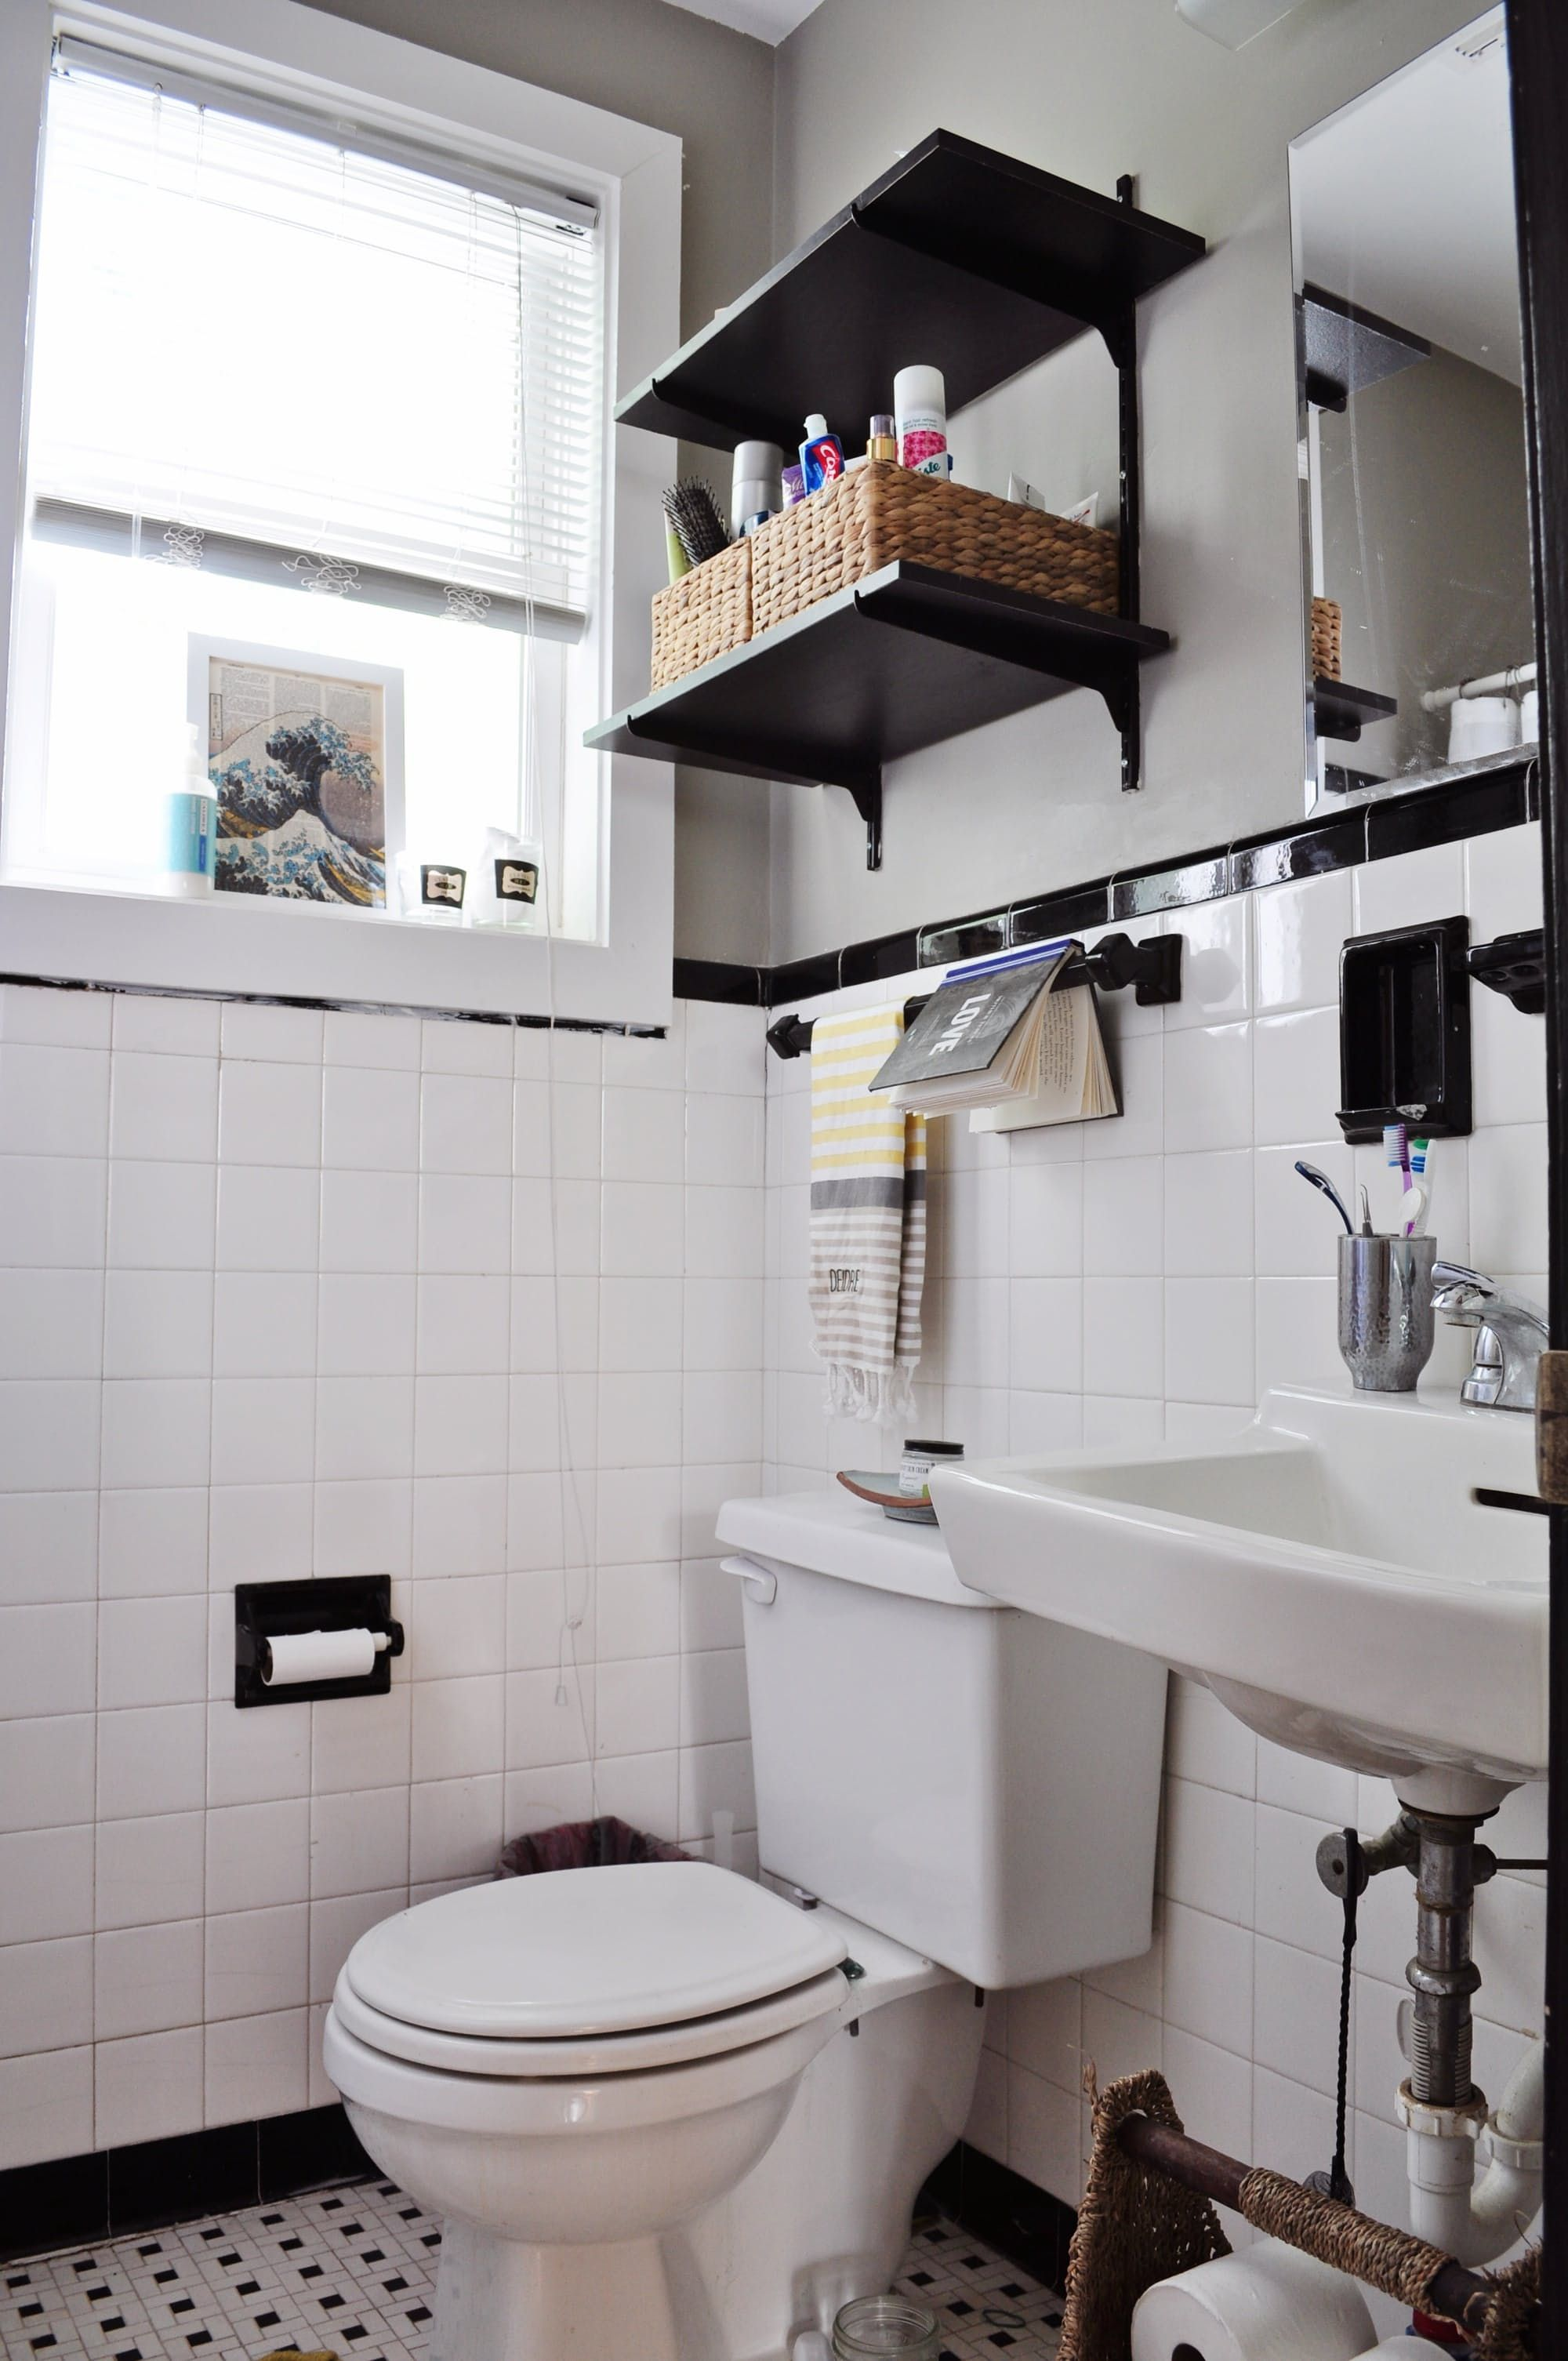 Sales Alert: Bathroom Accessories and Organizers on Sale Now ...